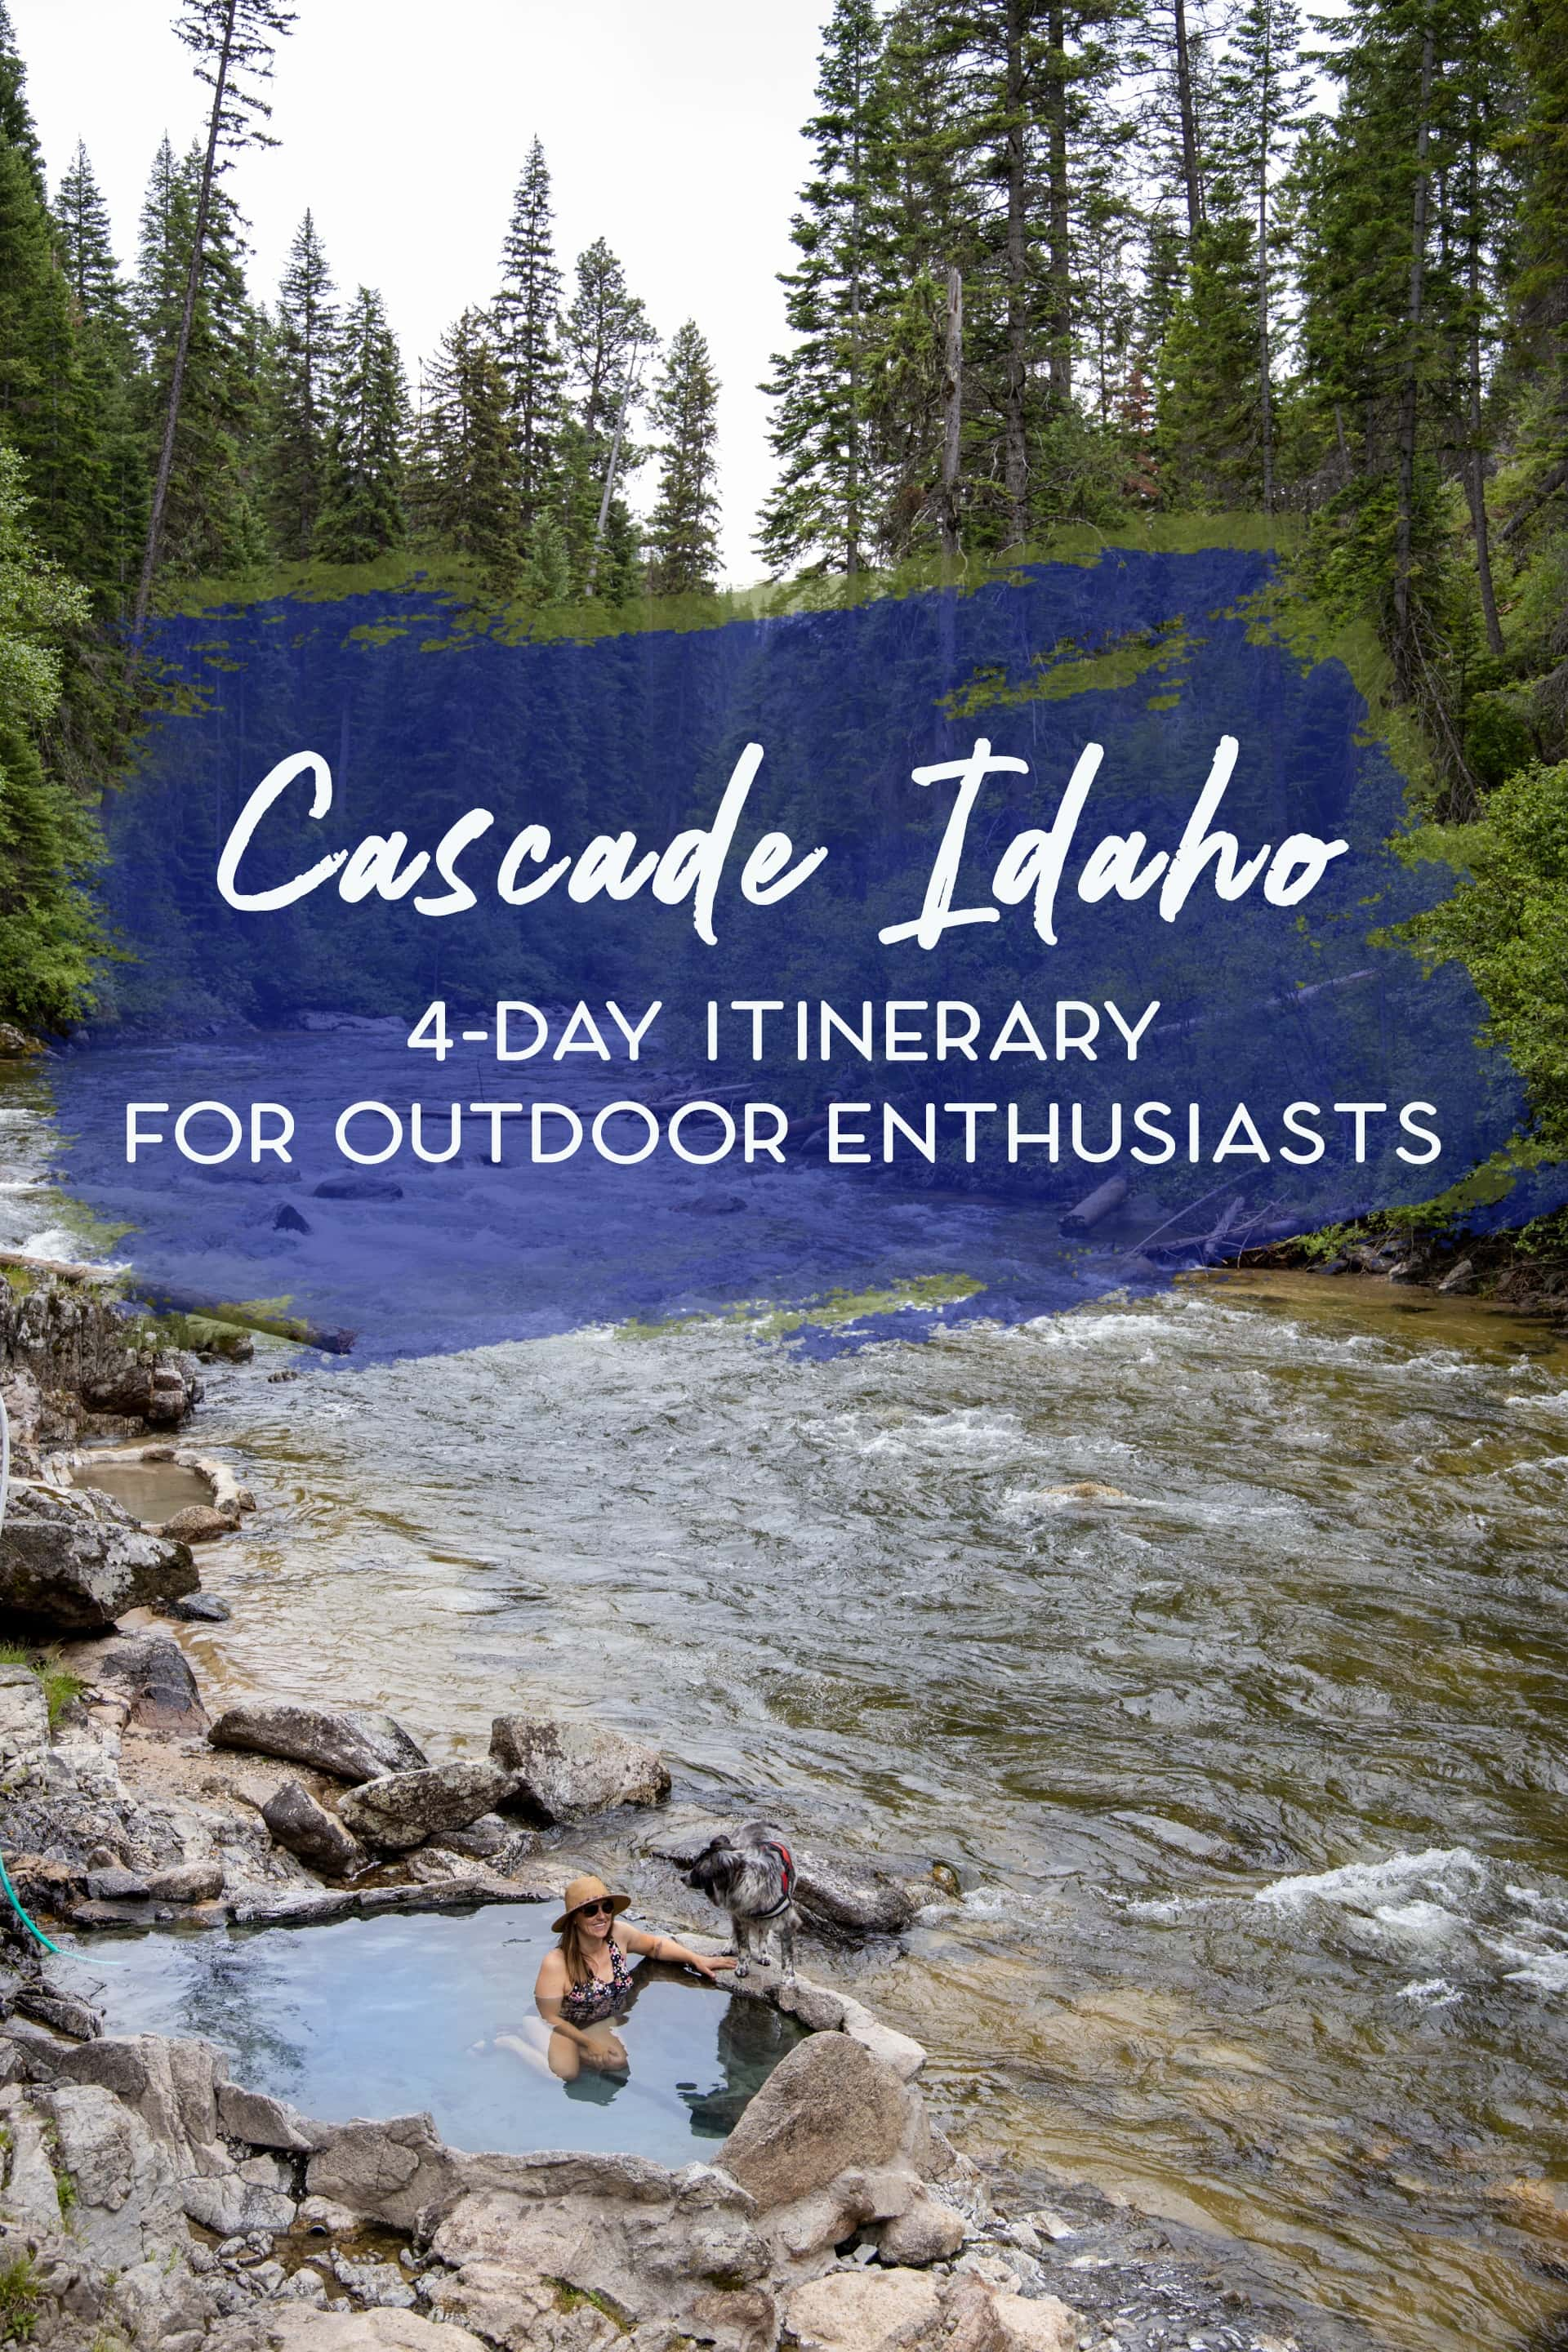 Hot springs, hiking, off-roading, biking, and more. Explore the best outdoor recreation in Cascade, Idaho with this 4-day itinerary.